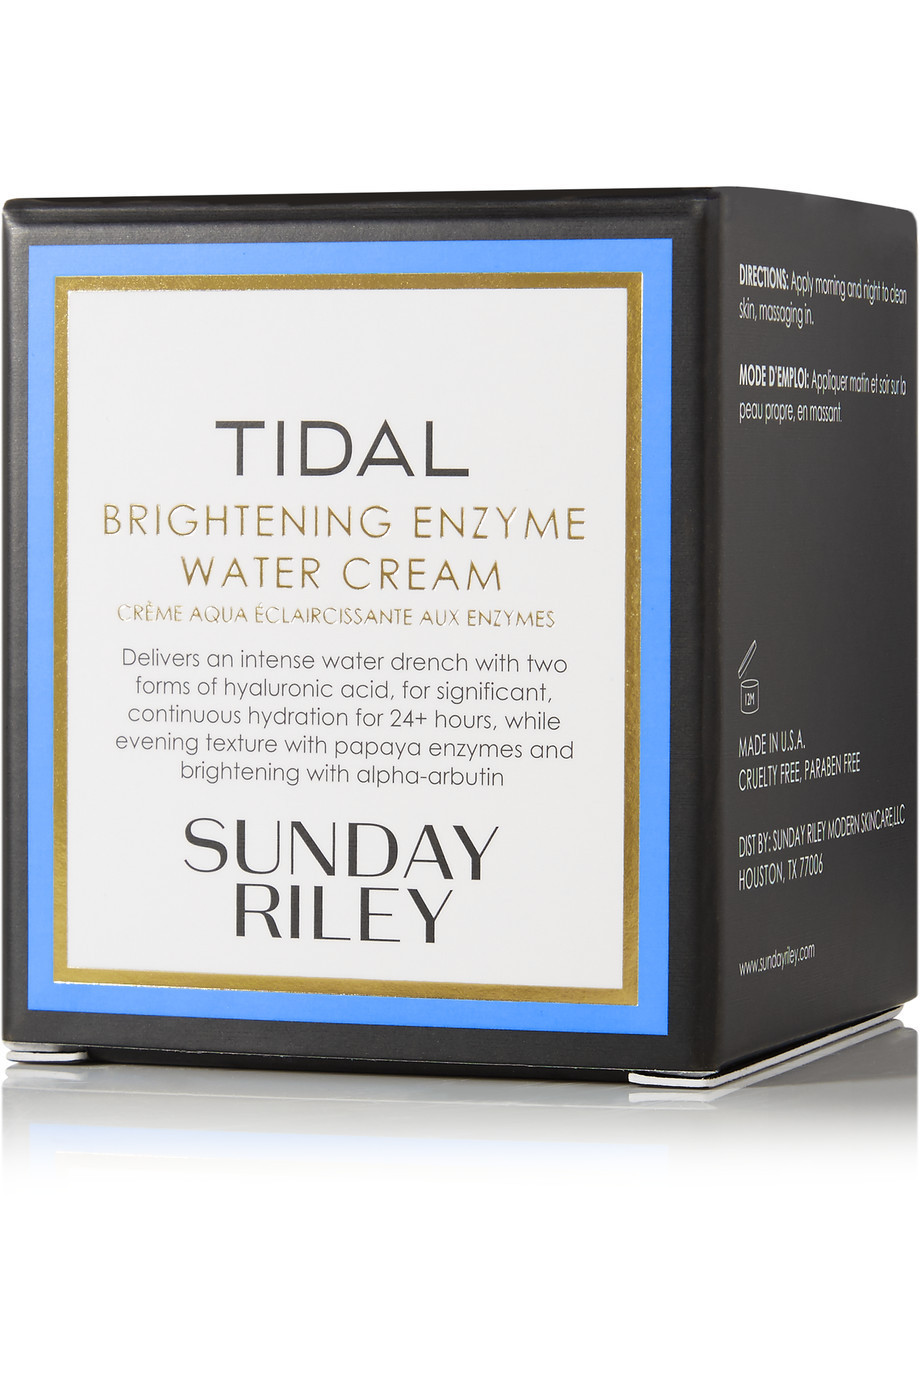 SUNDAY RILEY Tidal Brightening Enzyme Water Cream 50ml